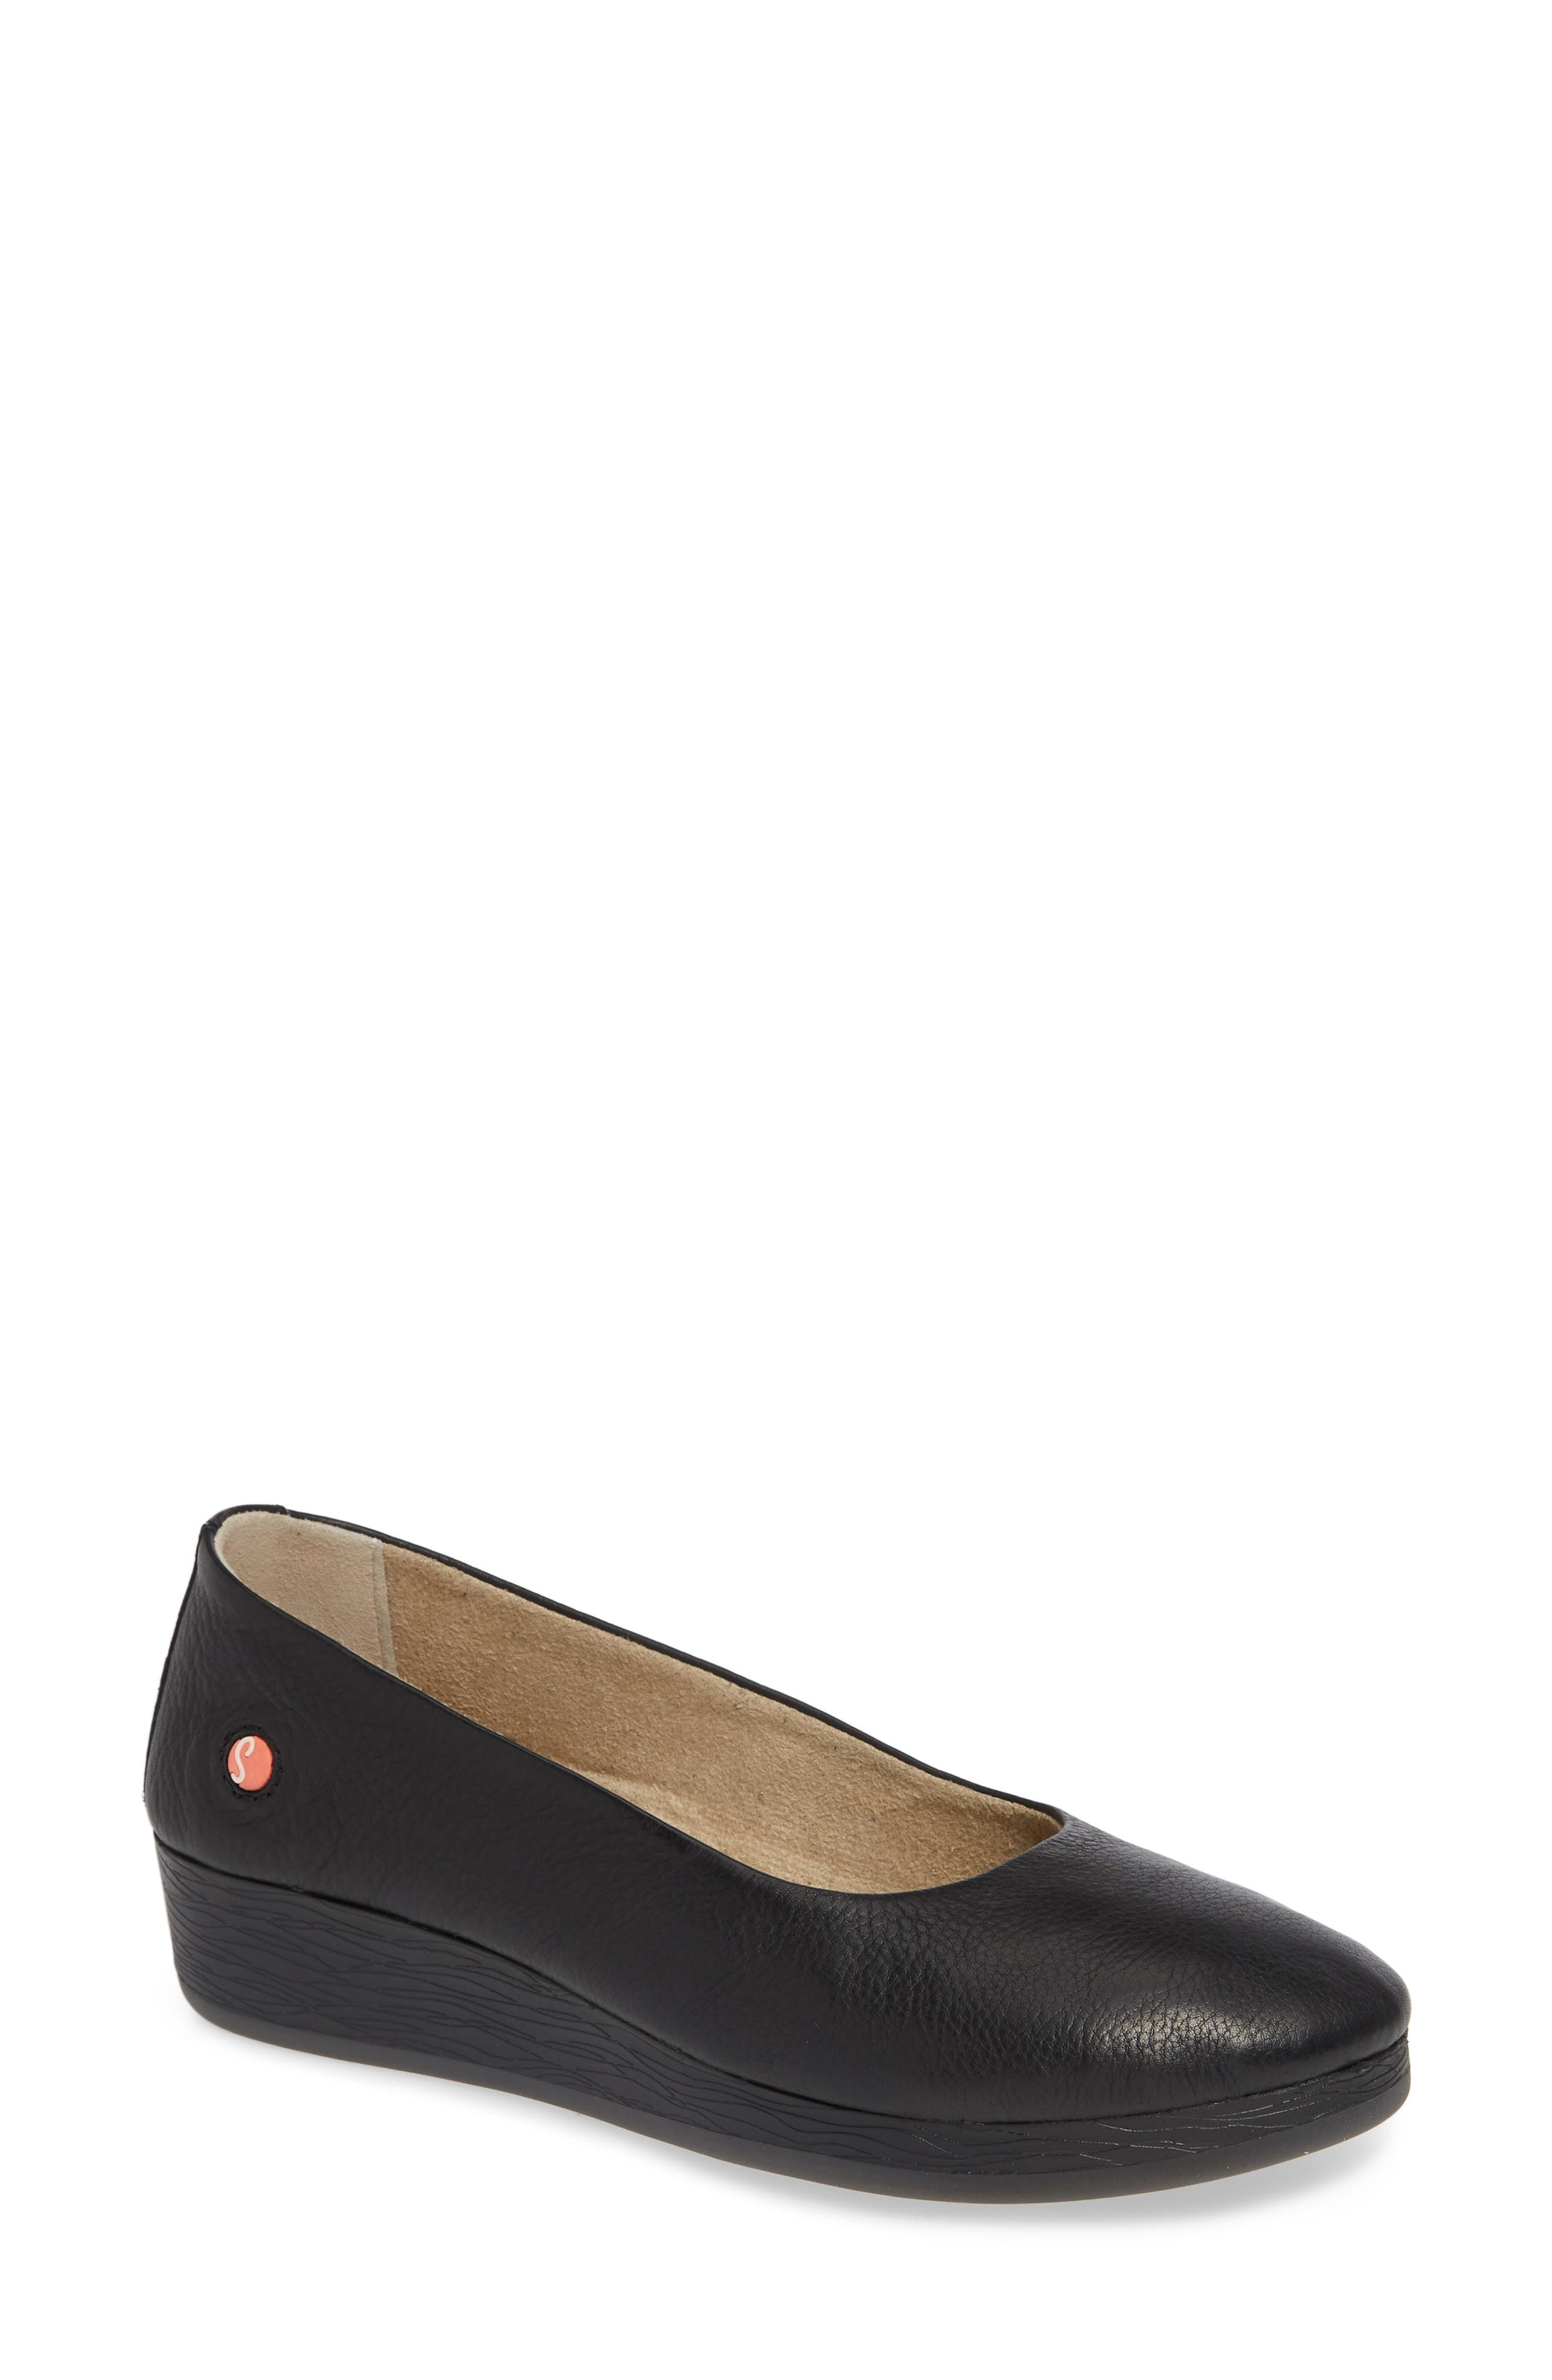 SOFTINOS BY FLY LONDON, Asa Soft Flat, Main thumbnail 1, color, BLACK SMOOTH LEATHER